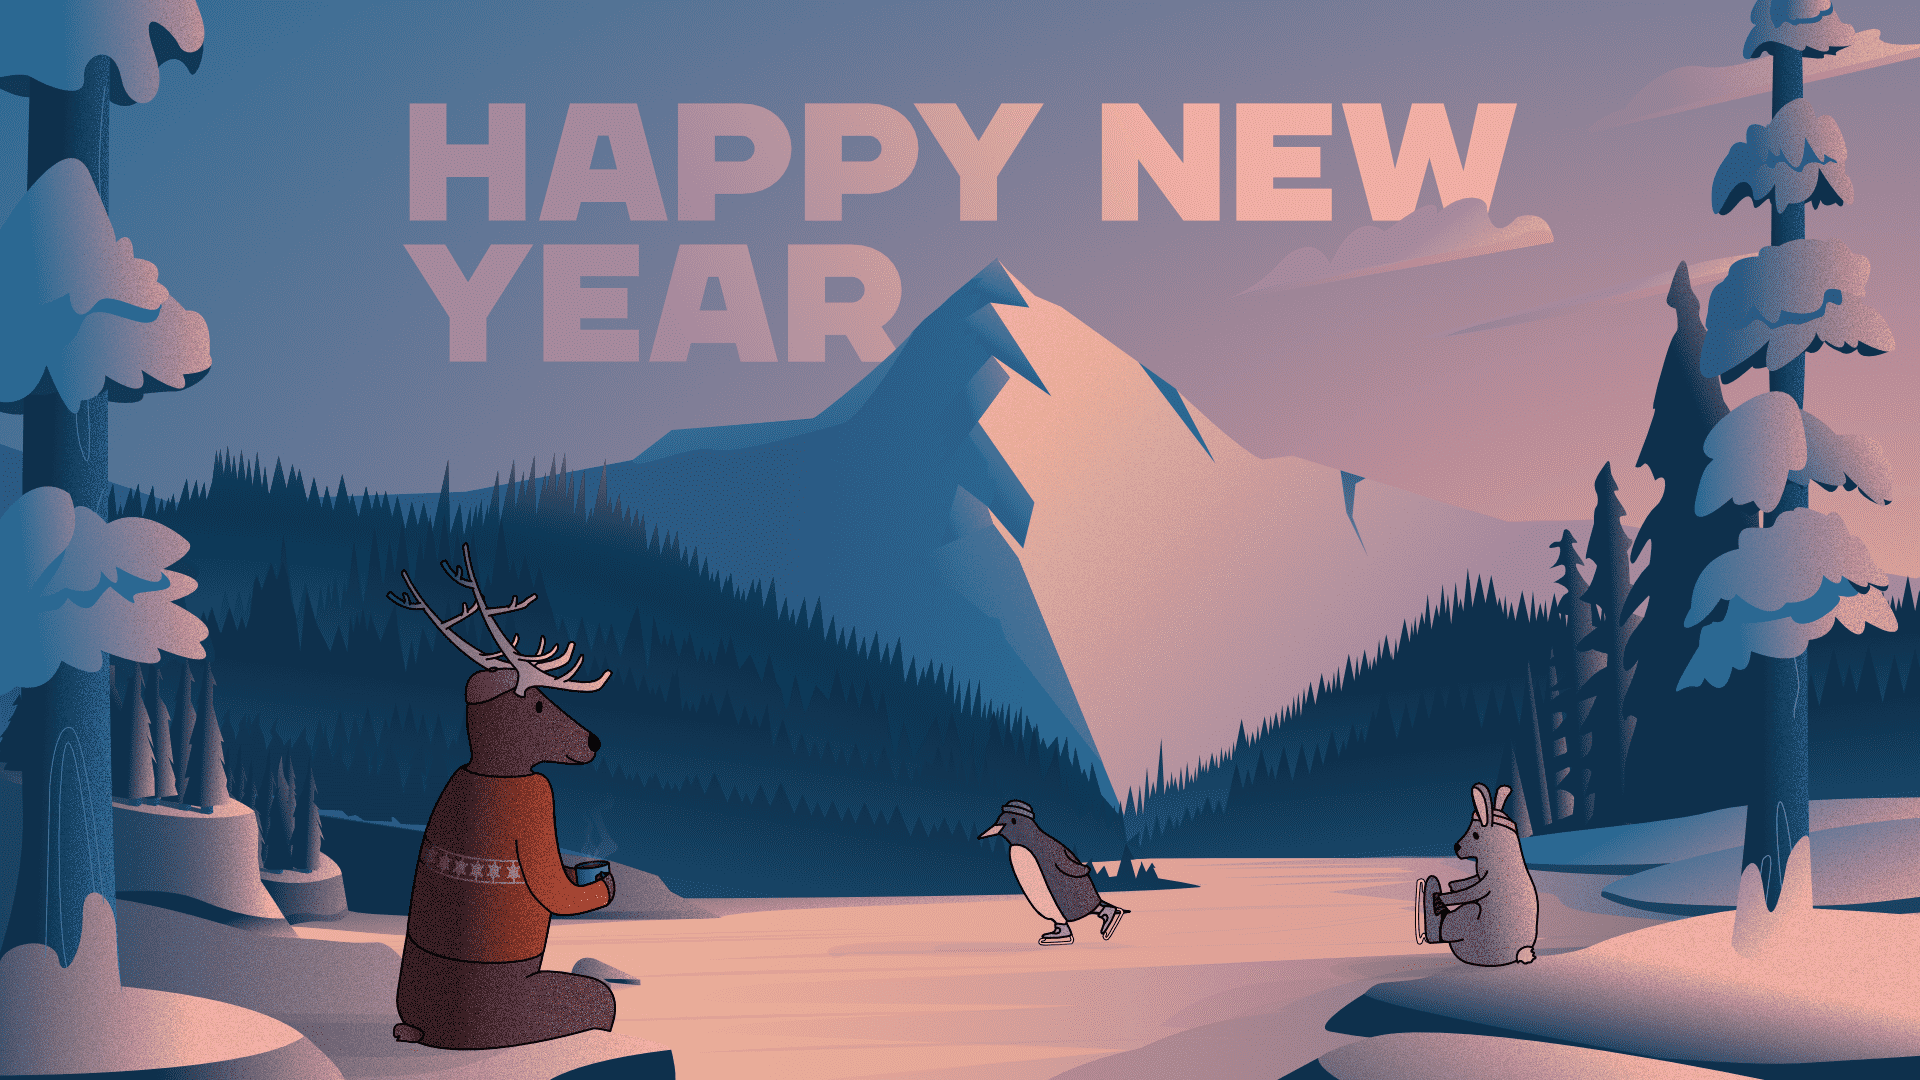 Image of a mountain and some trees with characters ice skating and relaxing.